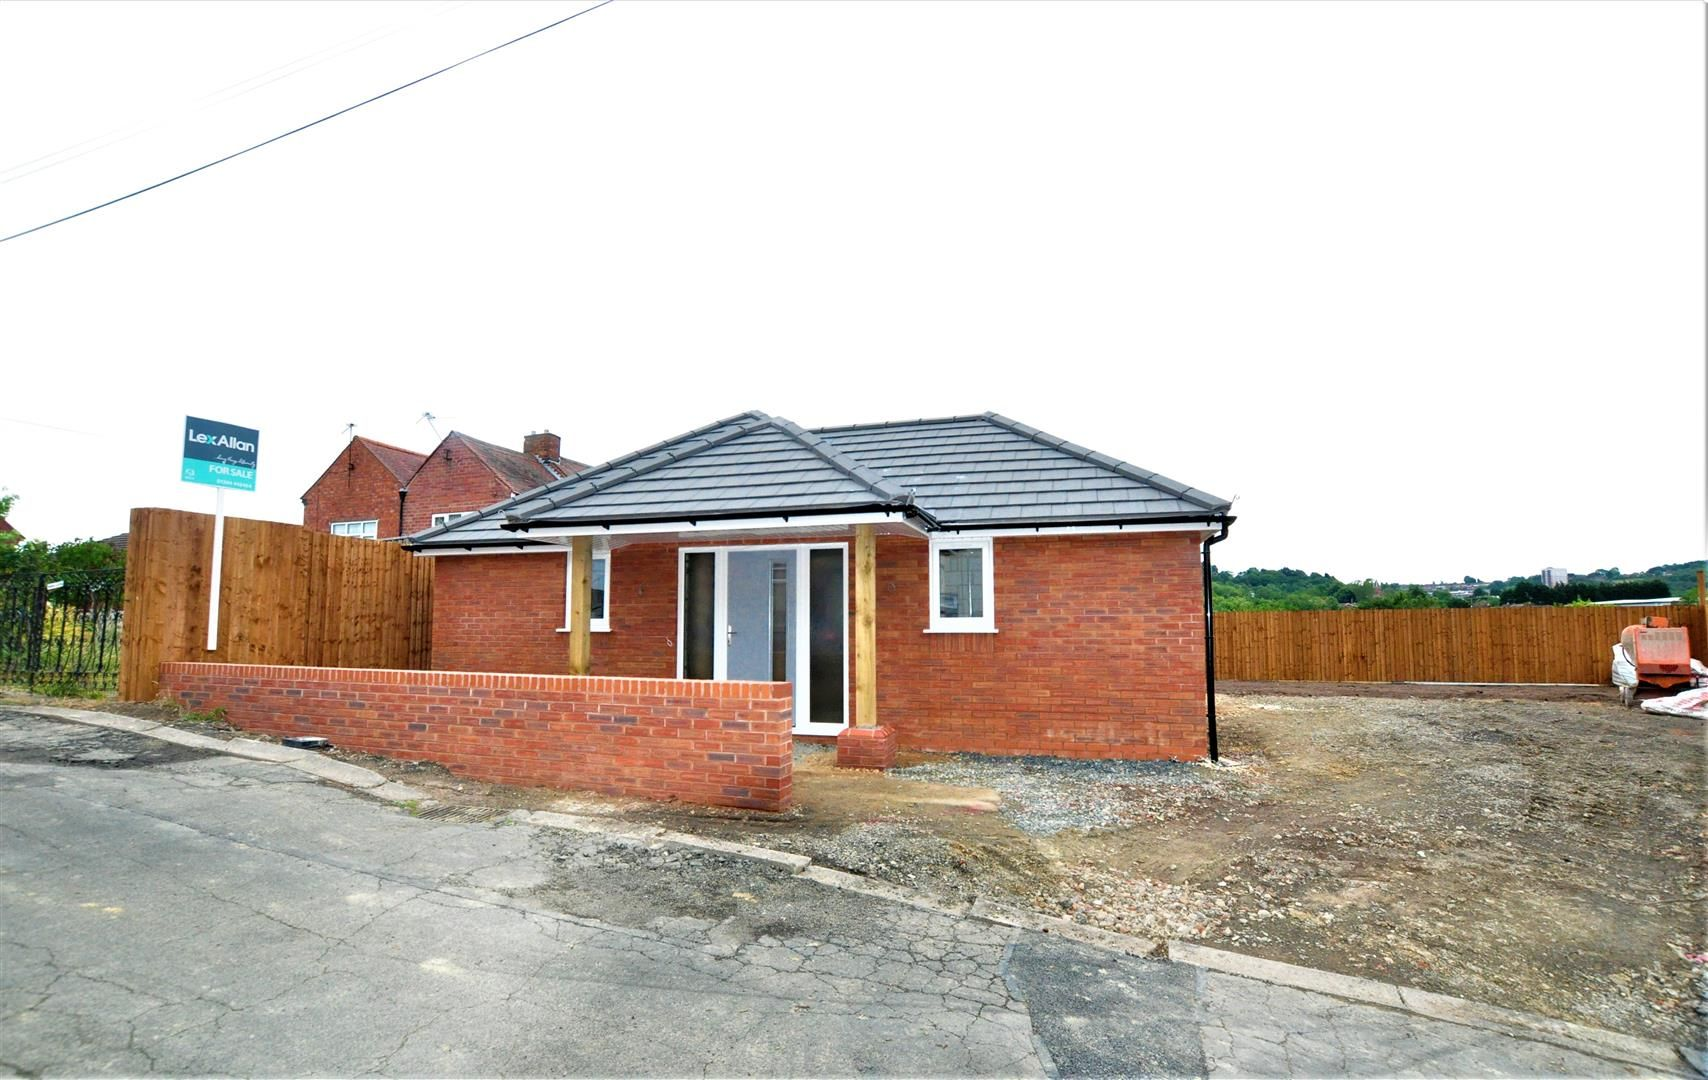 2 bed detached for sale in Quarry Bank, DY5